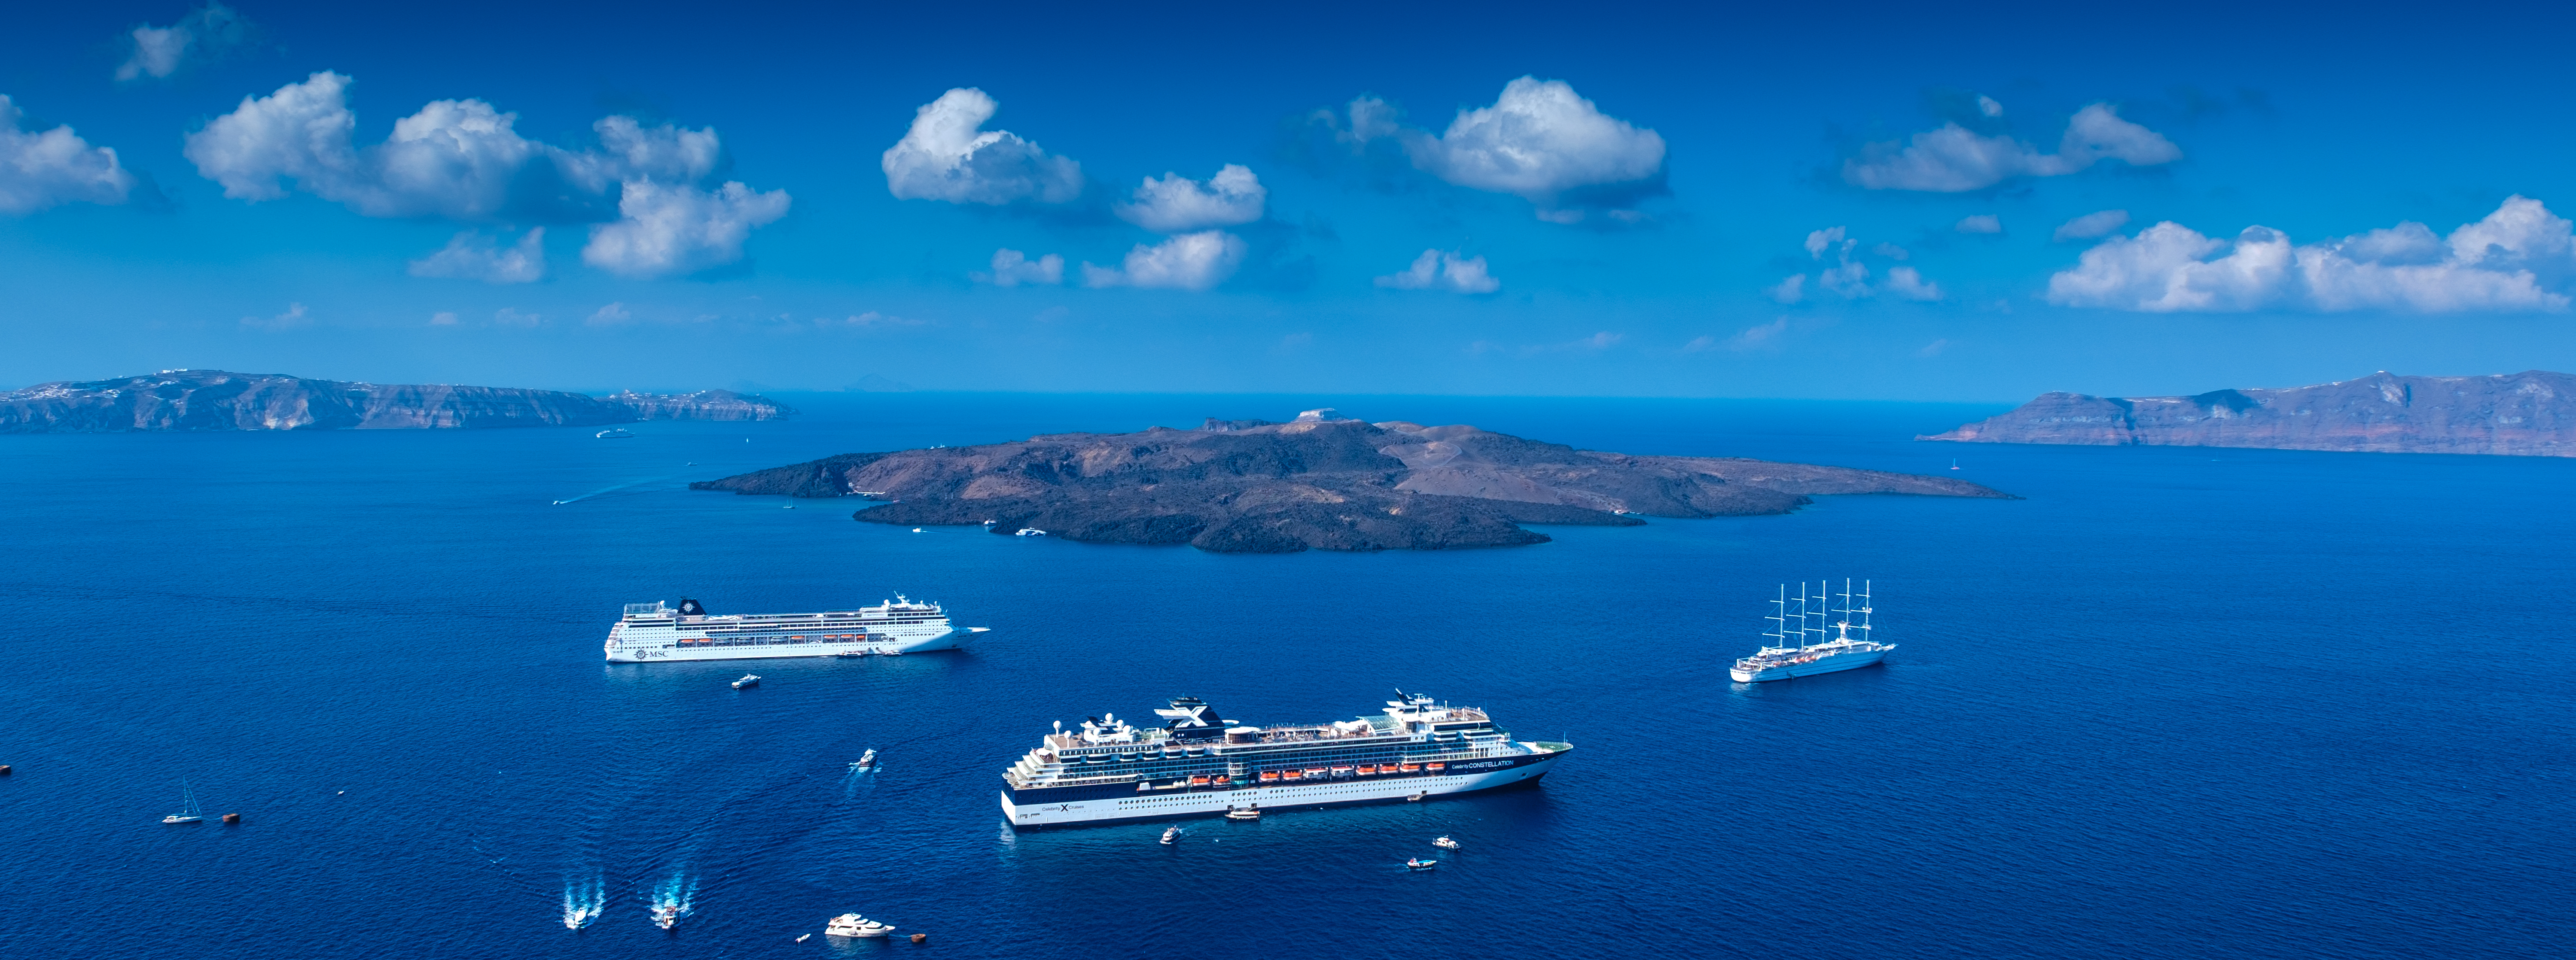 View of MSC cruise ship from Santorini, Greece